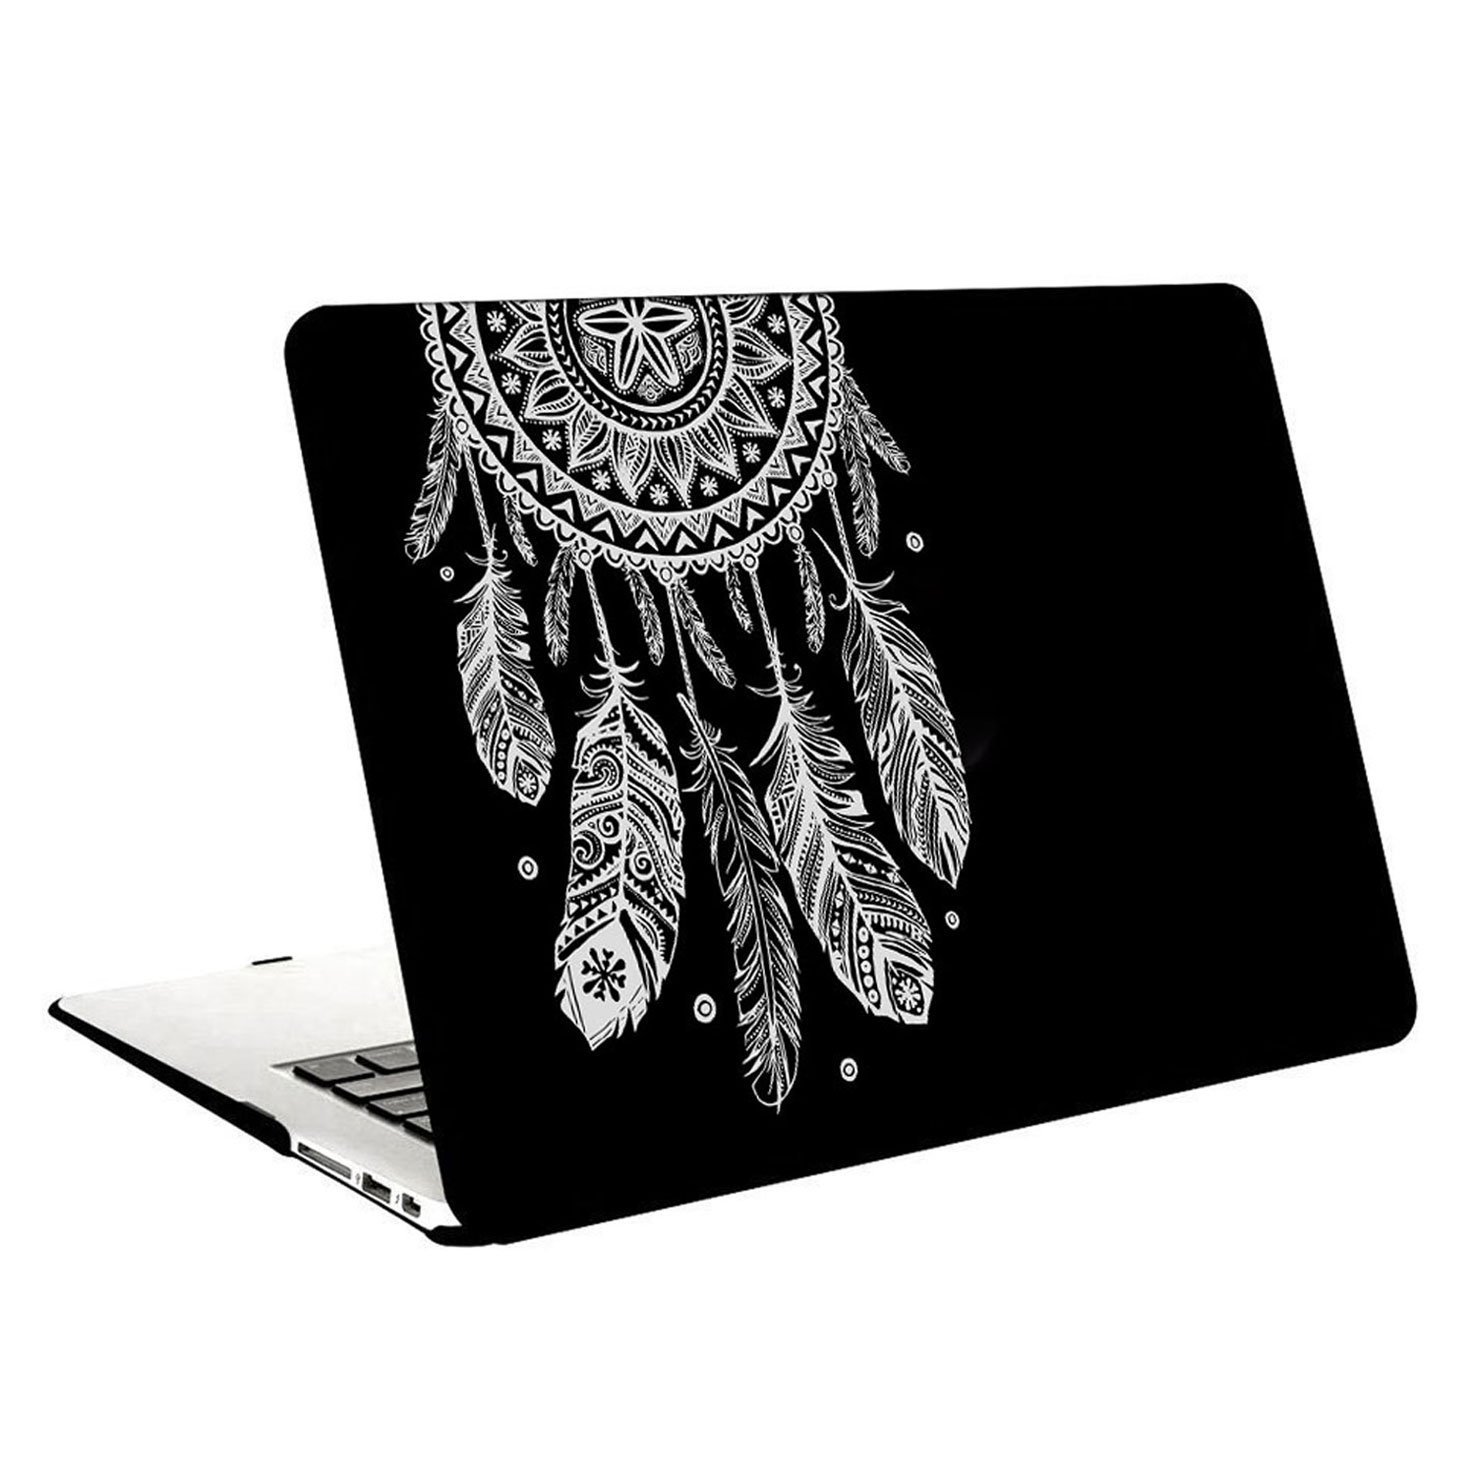 "Macbook Pro 13 with Retina Display Case, Leathlux Tribal Black 2 in 1 Plastic Hard Case Protective Cover Slim Solid PC Shell for Apple MacBook Pro 13.3"" with Retina Display Laptops (A1425 / A1502)"